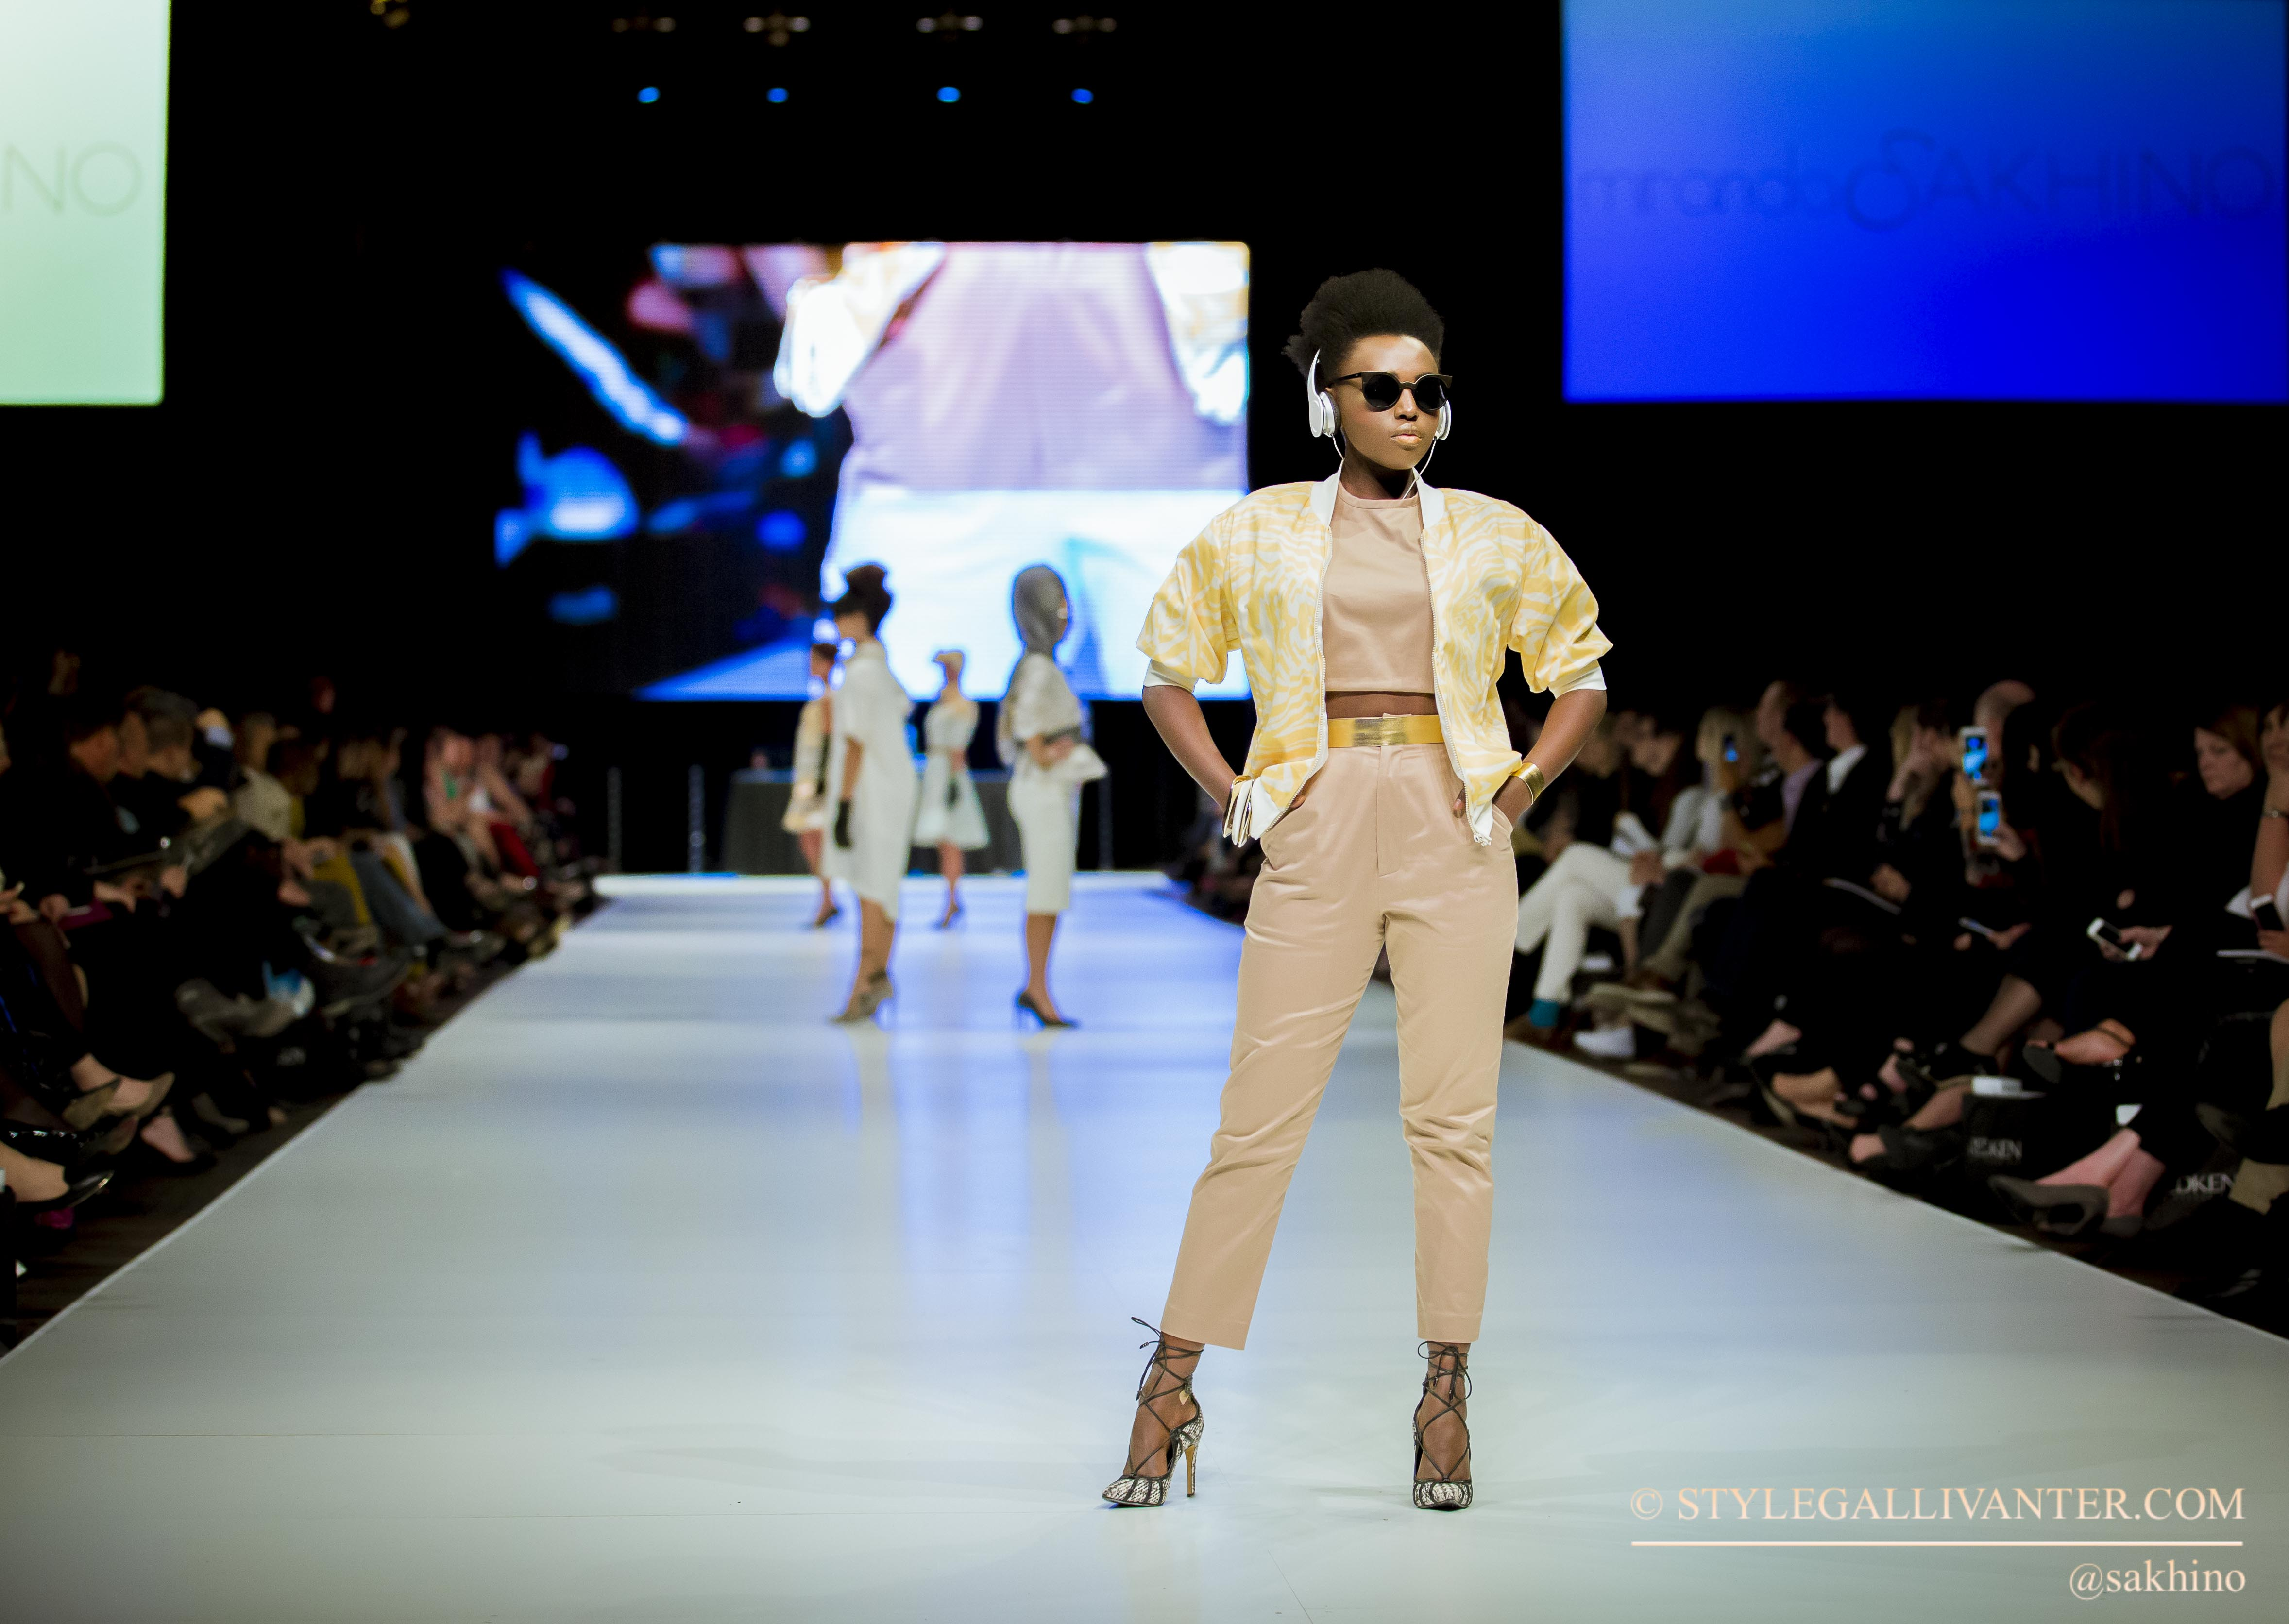 mirandaSAKHINO-copyright-2015_not-to-be-used-without-permission_mirandasakhino-runway-2015_mirandasakhino-fashfest-miranda-sakhino-resort-collection_miranda-sakhino-fashfest-2015-kendi